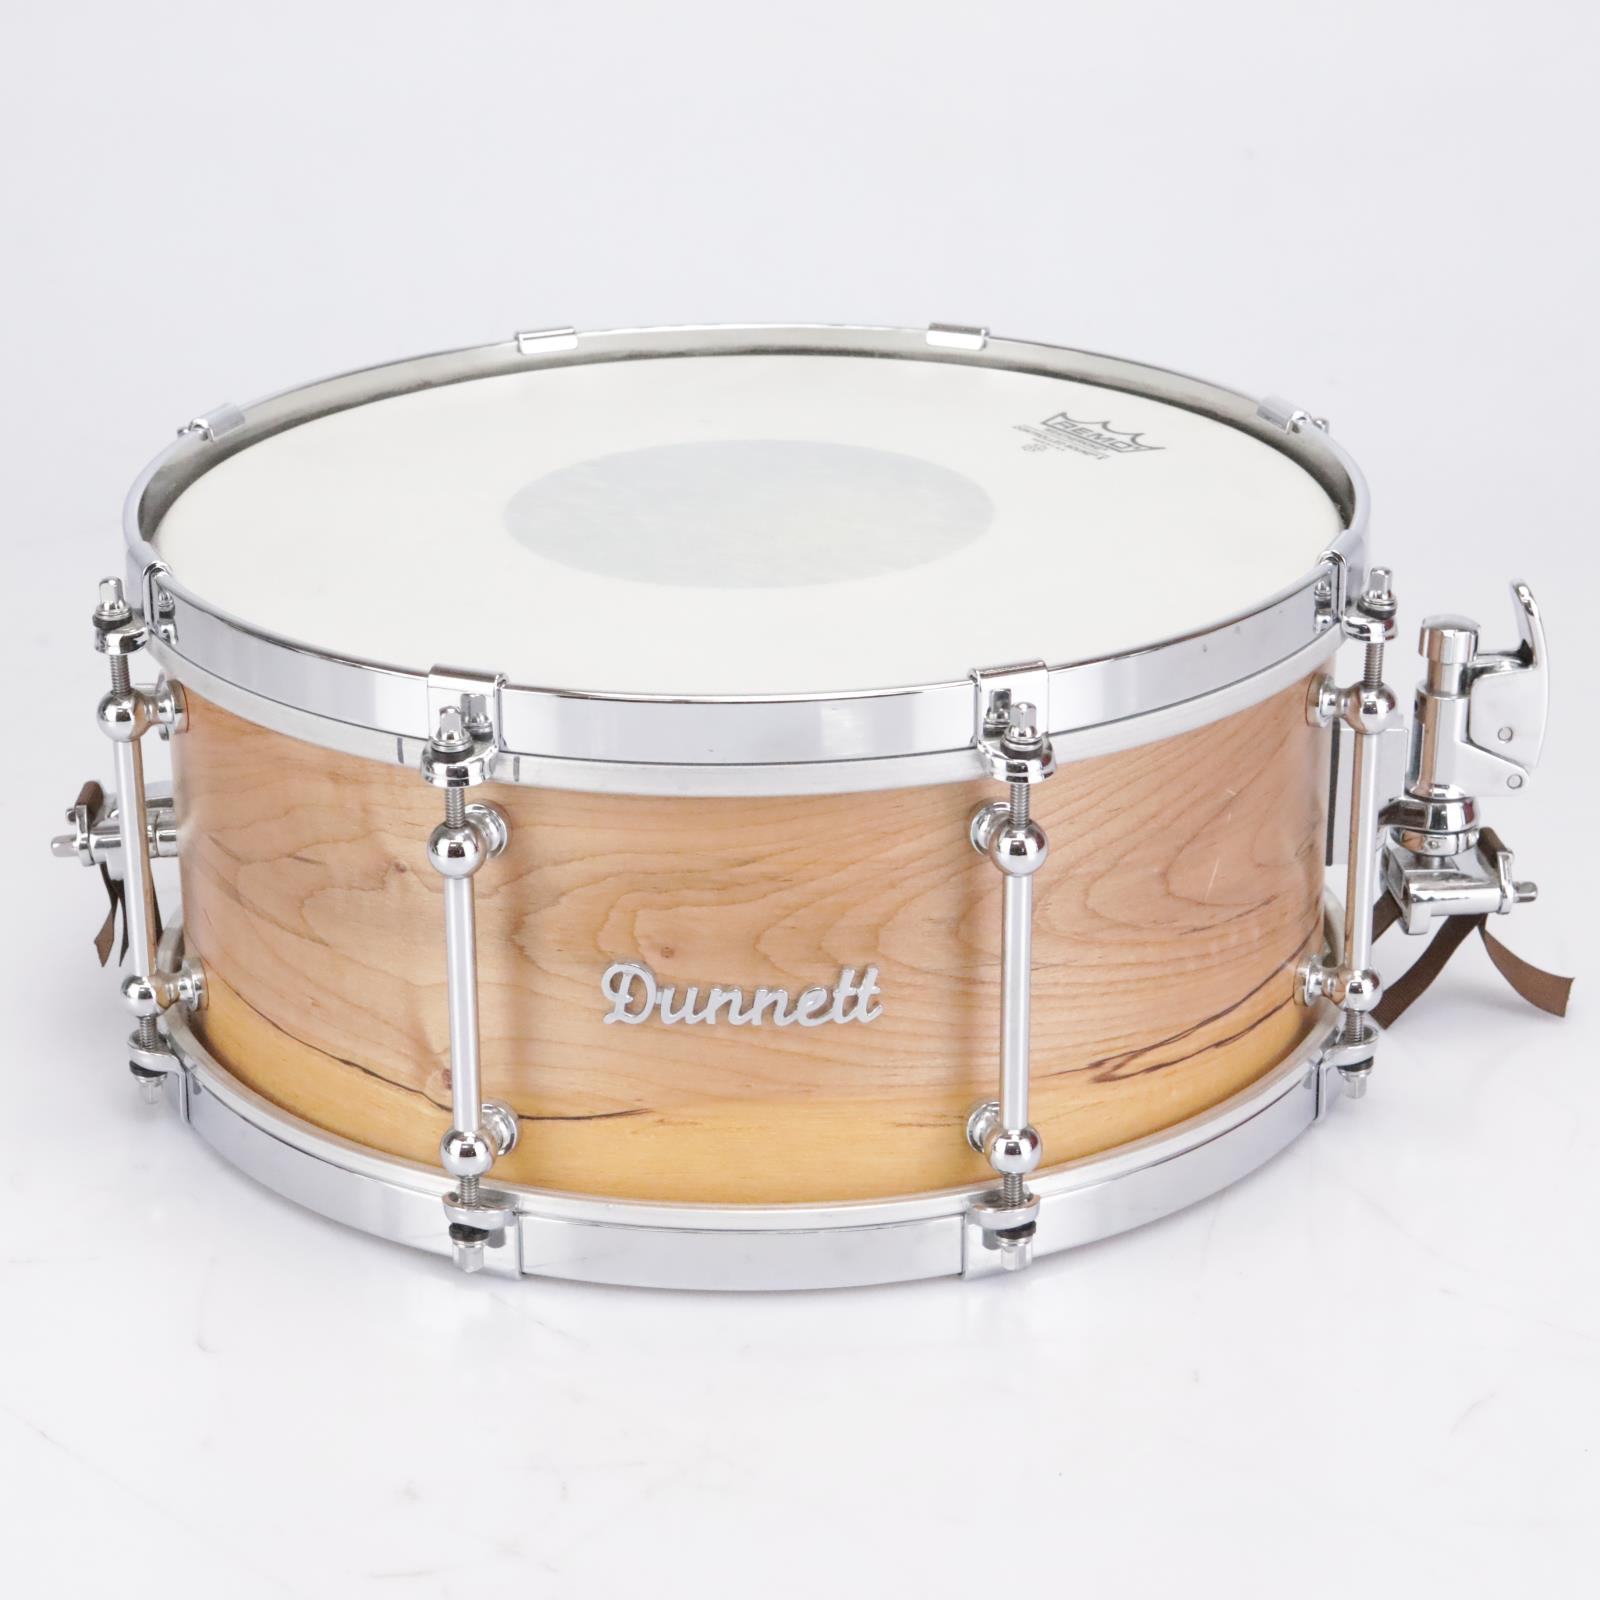 """Dunnett Maple Monoply Wood Snare Drum 14"""" x 6.5"""" #42793"""